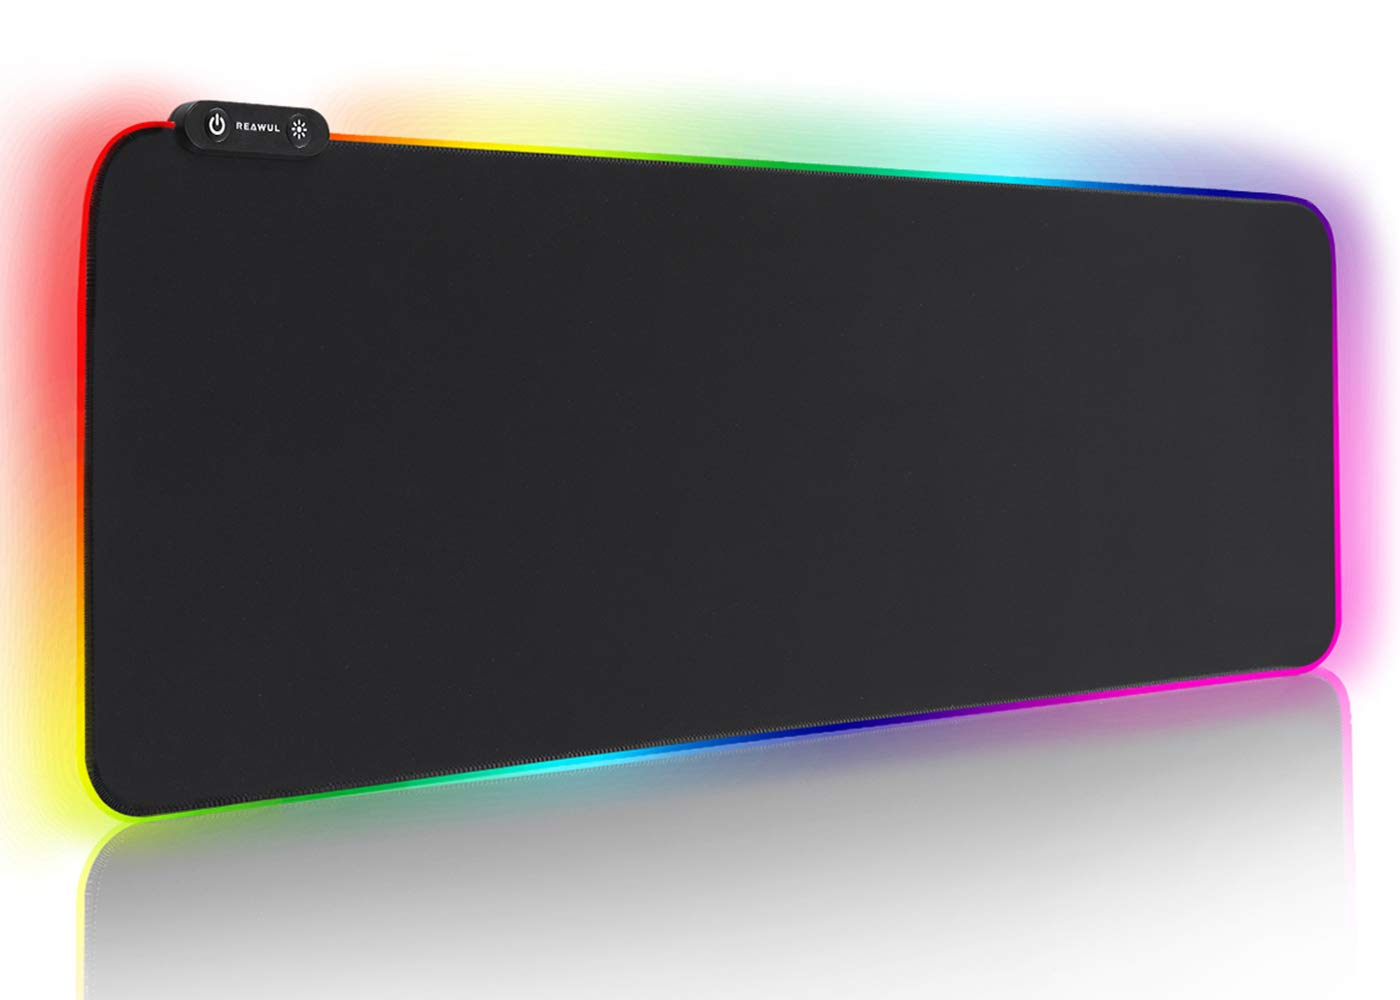 Large RGB Gaming Mouse Pad - Reawul 14 Modes Oversized Glowing Led Extended Mousepad, Anti-Slip Rubber Base and Waterproof Surface, Extra Large Soft Led Computer Keyboard Mouse Mat - 31.5 x 11.8in by Reawul